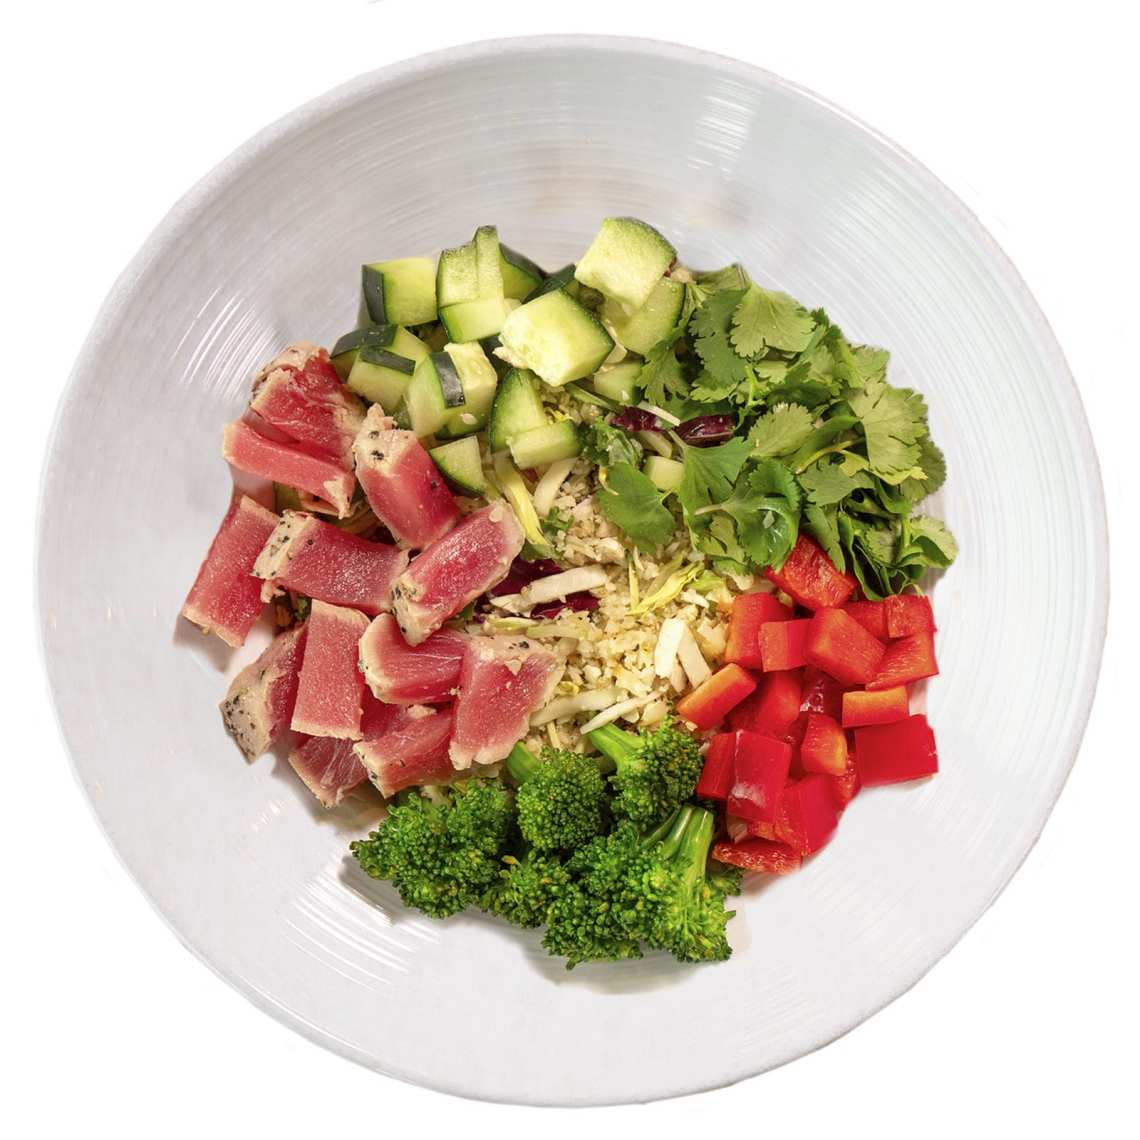 crushed-red-samurai-tuna-crave-a-bowl